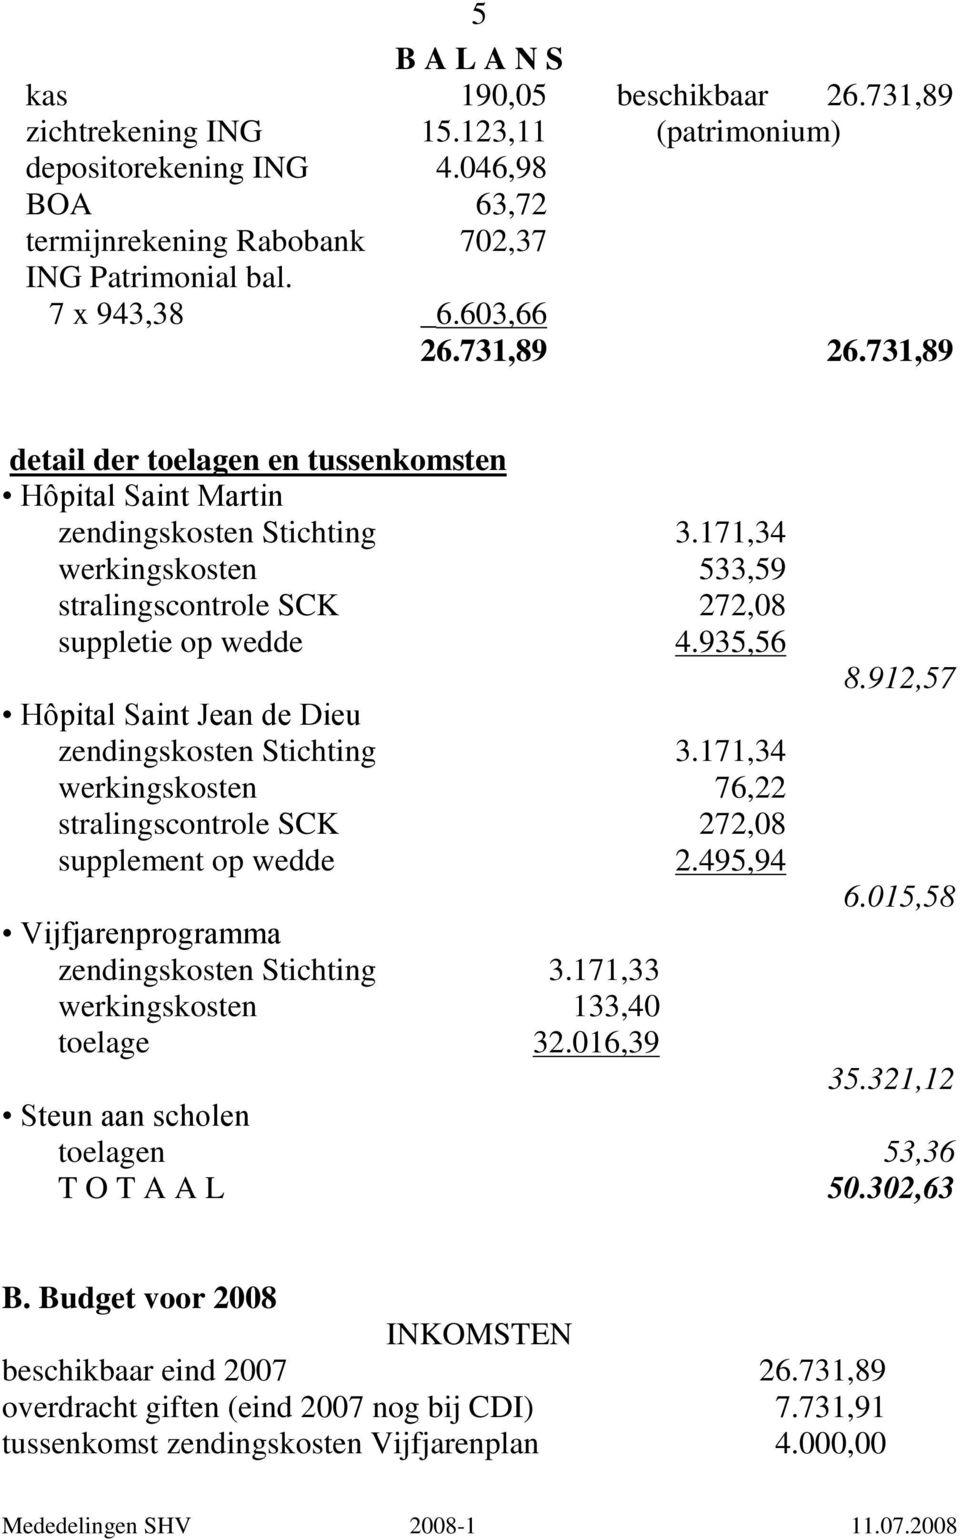 935,56 Hôpital Saint Jean de Dieu zendingskosten Stichting 3.171,34 werkingskosten 76,22 stralingscontrole SCK 272,08 supplement op wedde 2.495,94 8.912,57 6.